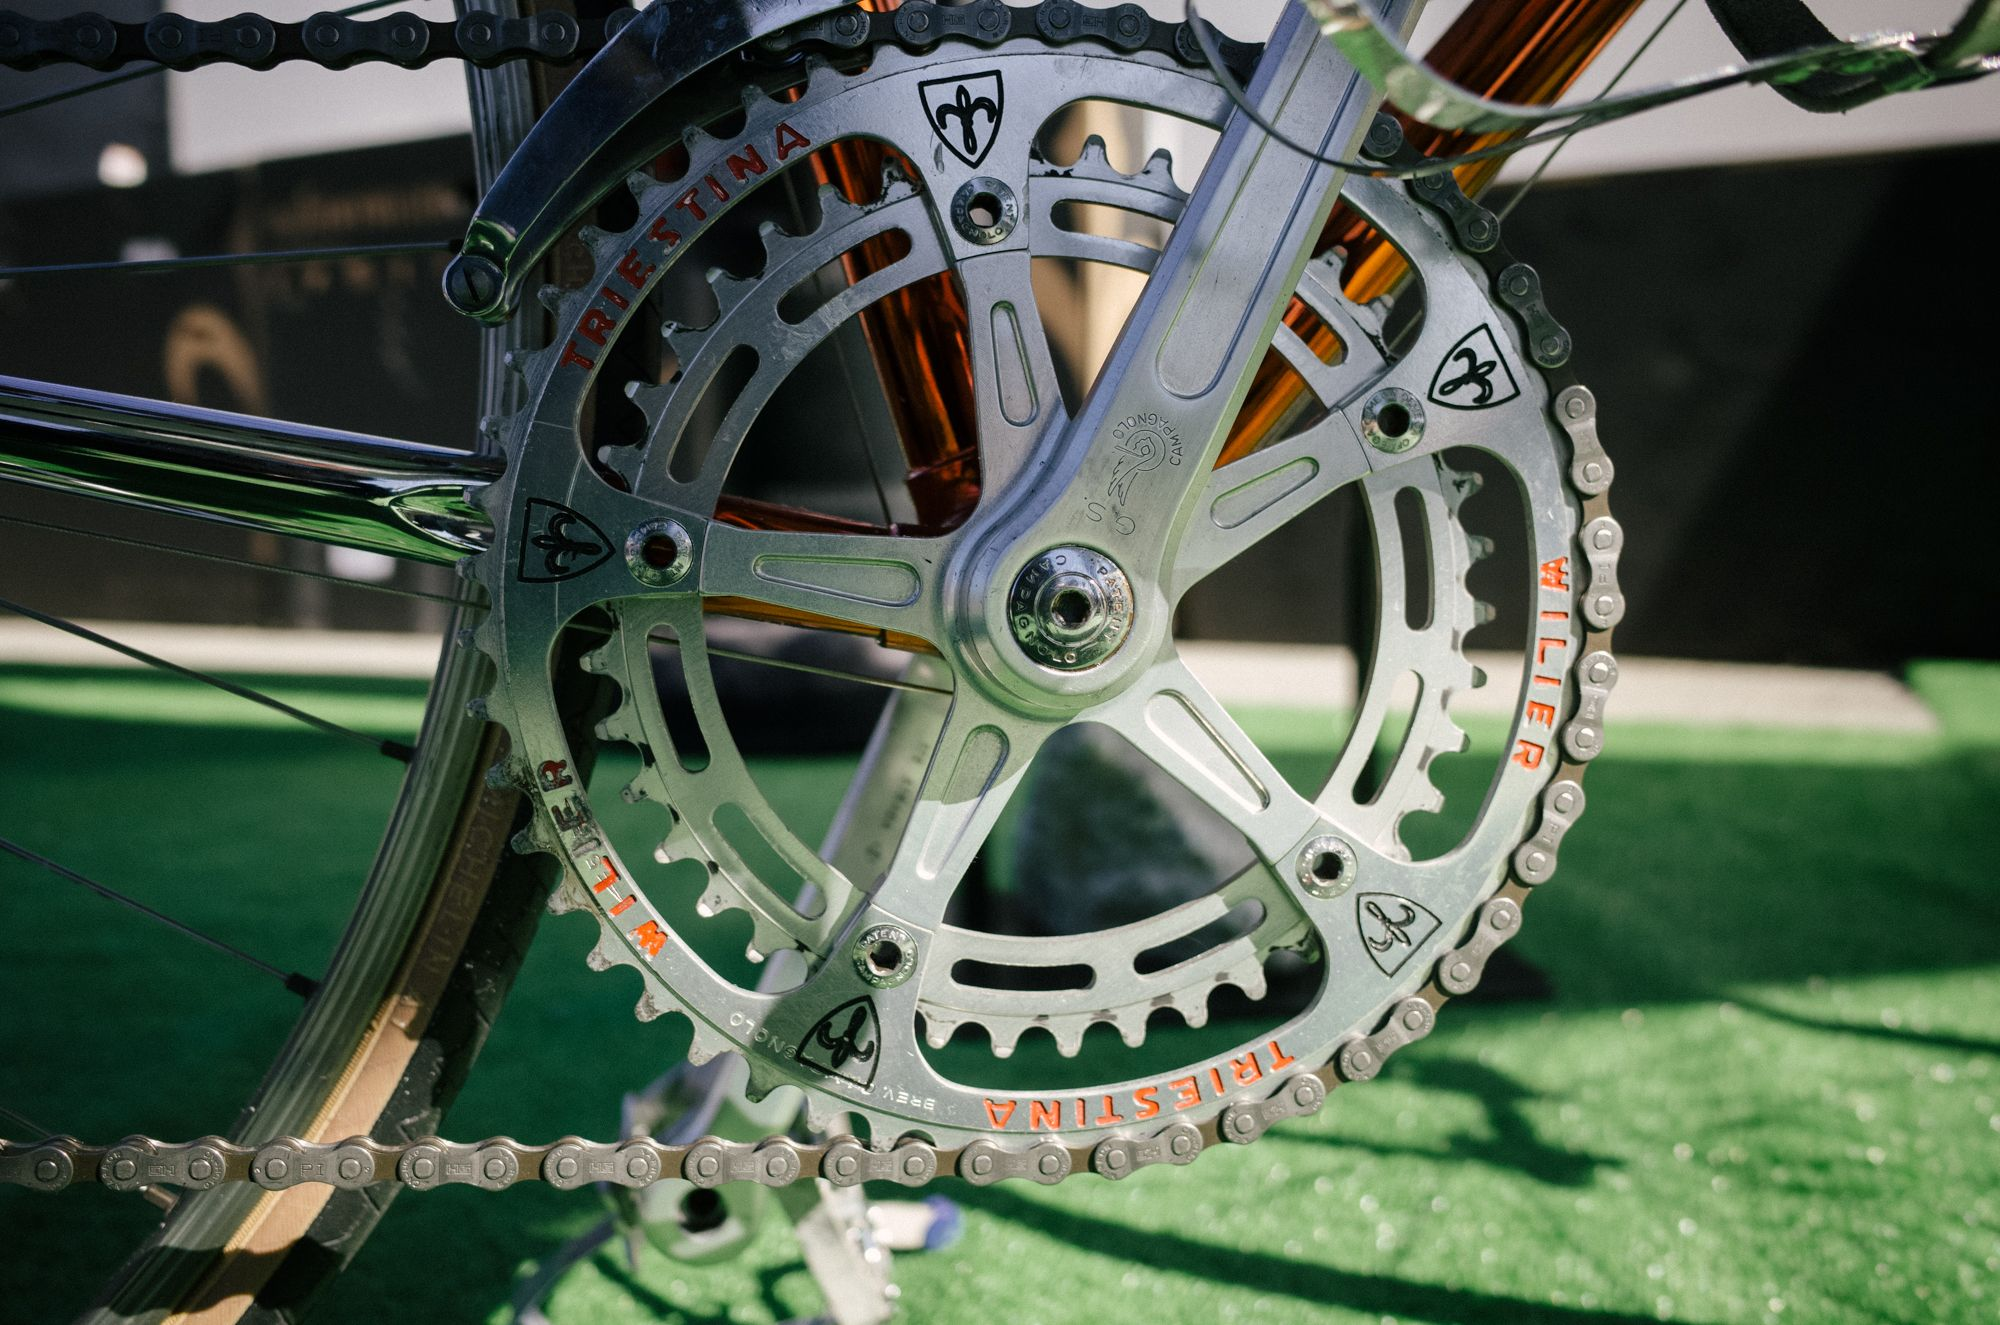 Unfortunately, Campy has no plans to start making cranksets this pretty again. But it's fun to look at.